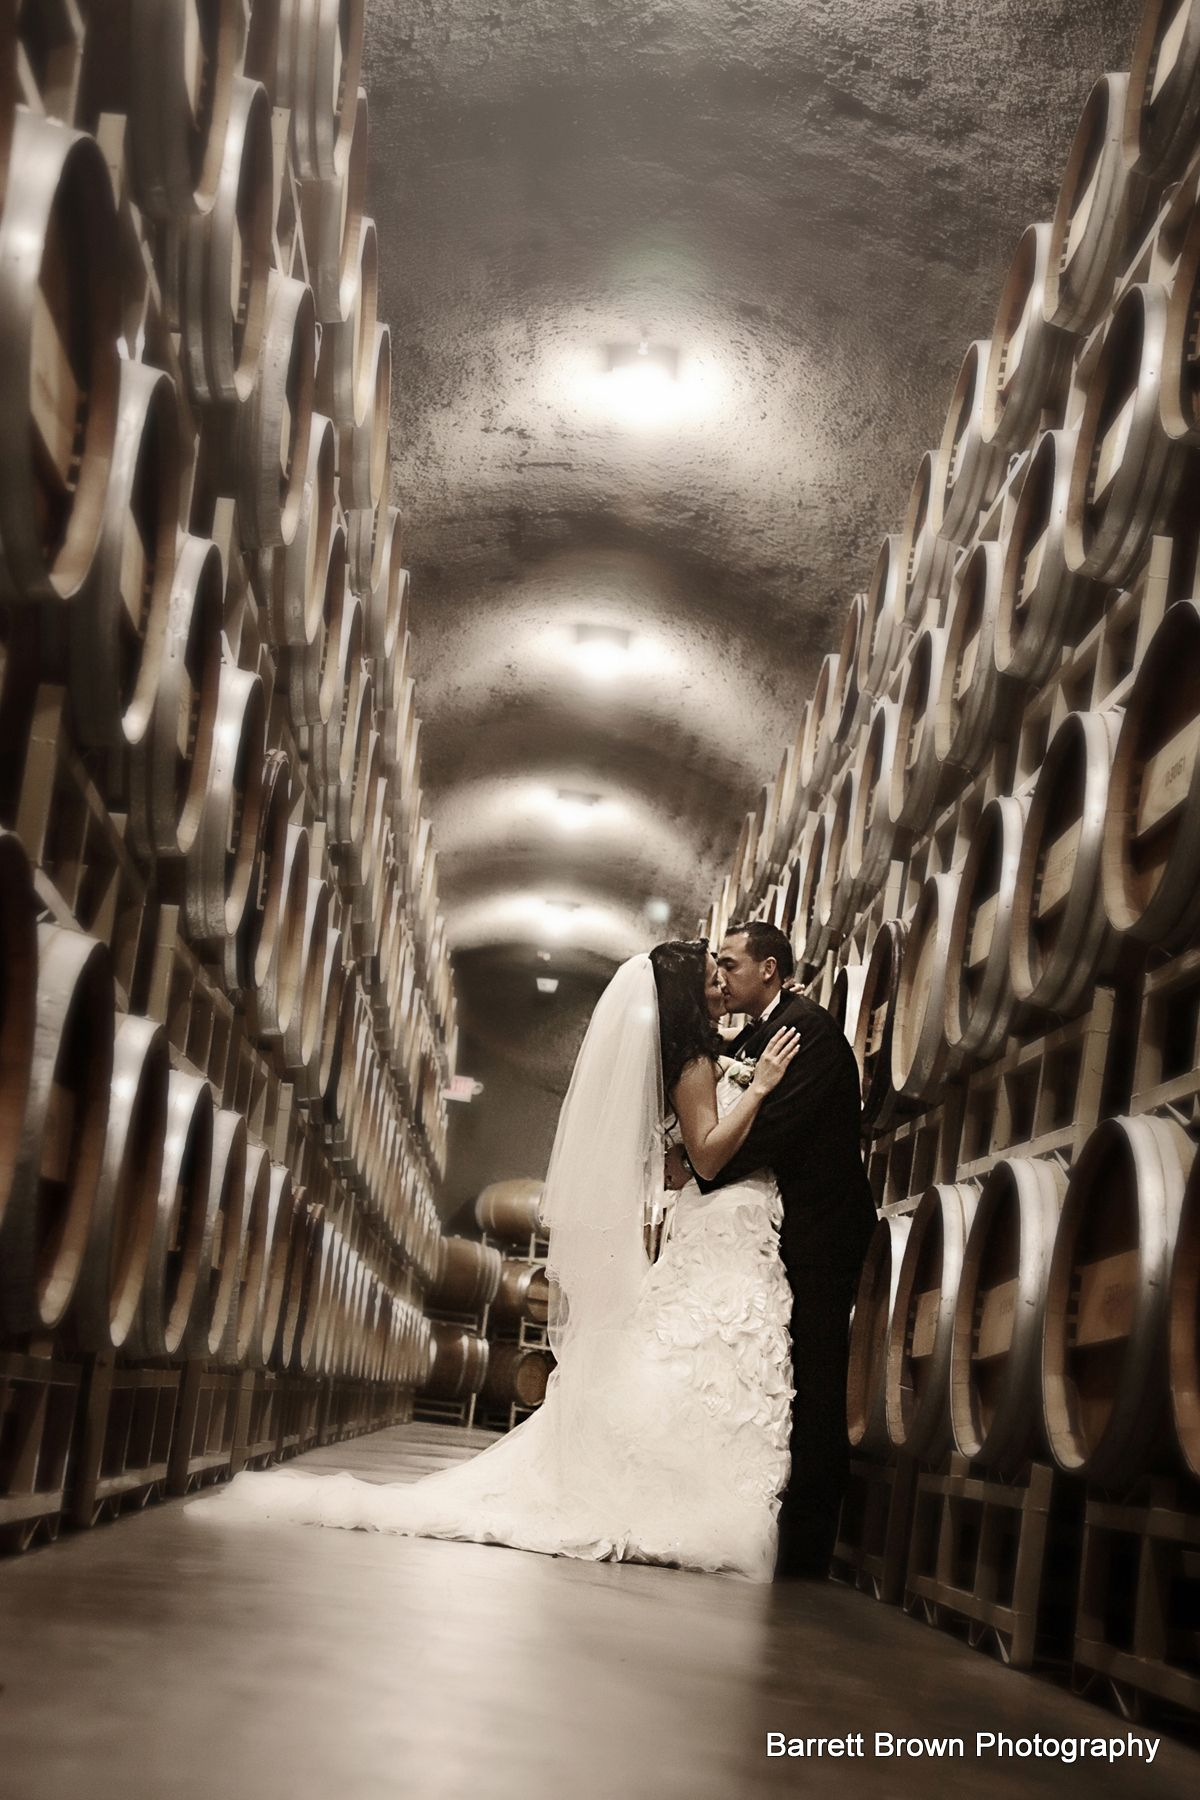 Groom dipping bride while the couple kiss in a warehouse between two four-barrel high alcohol fermentation barrels